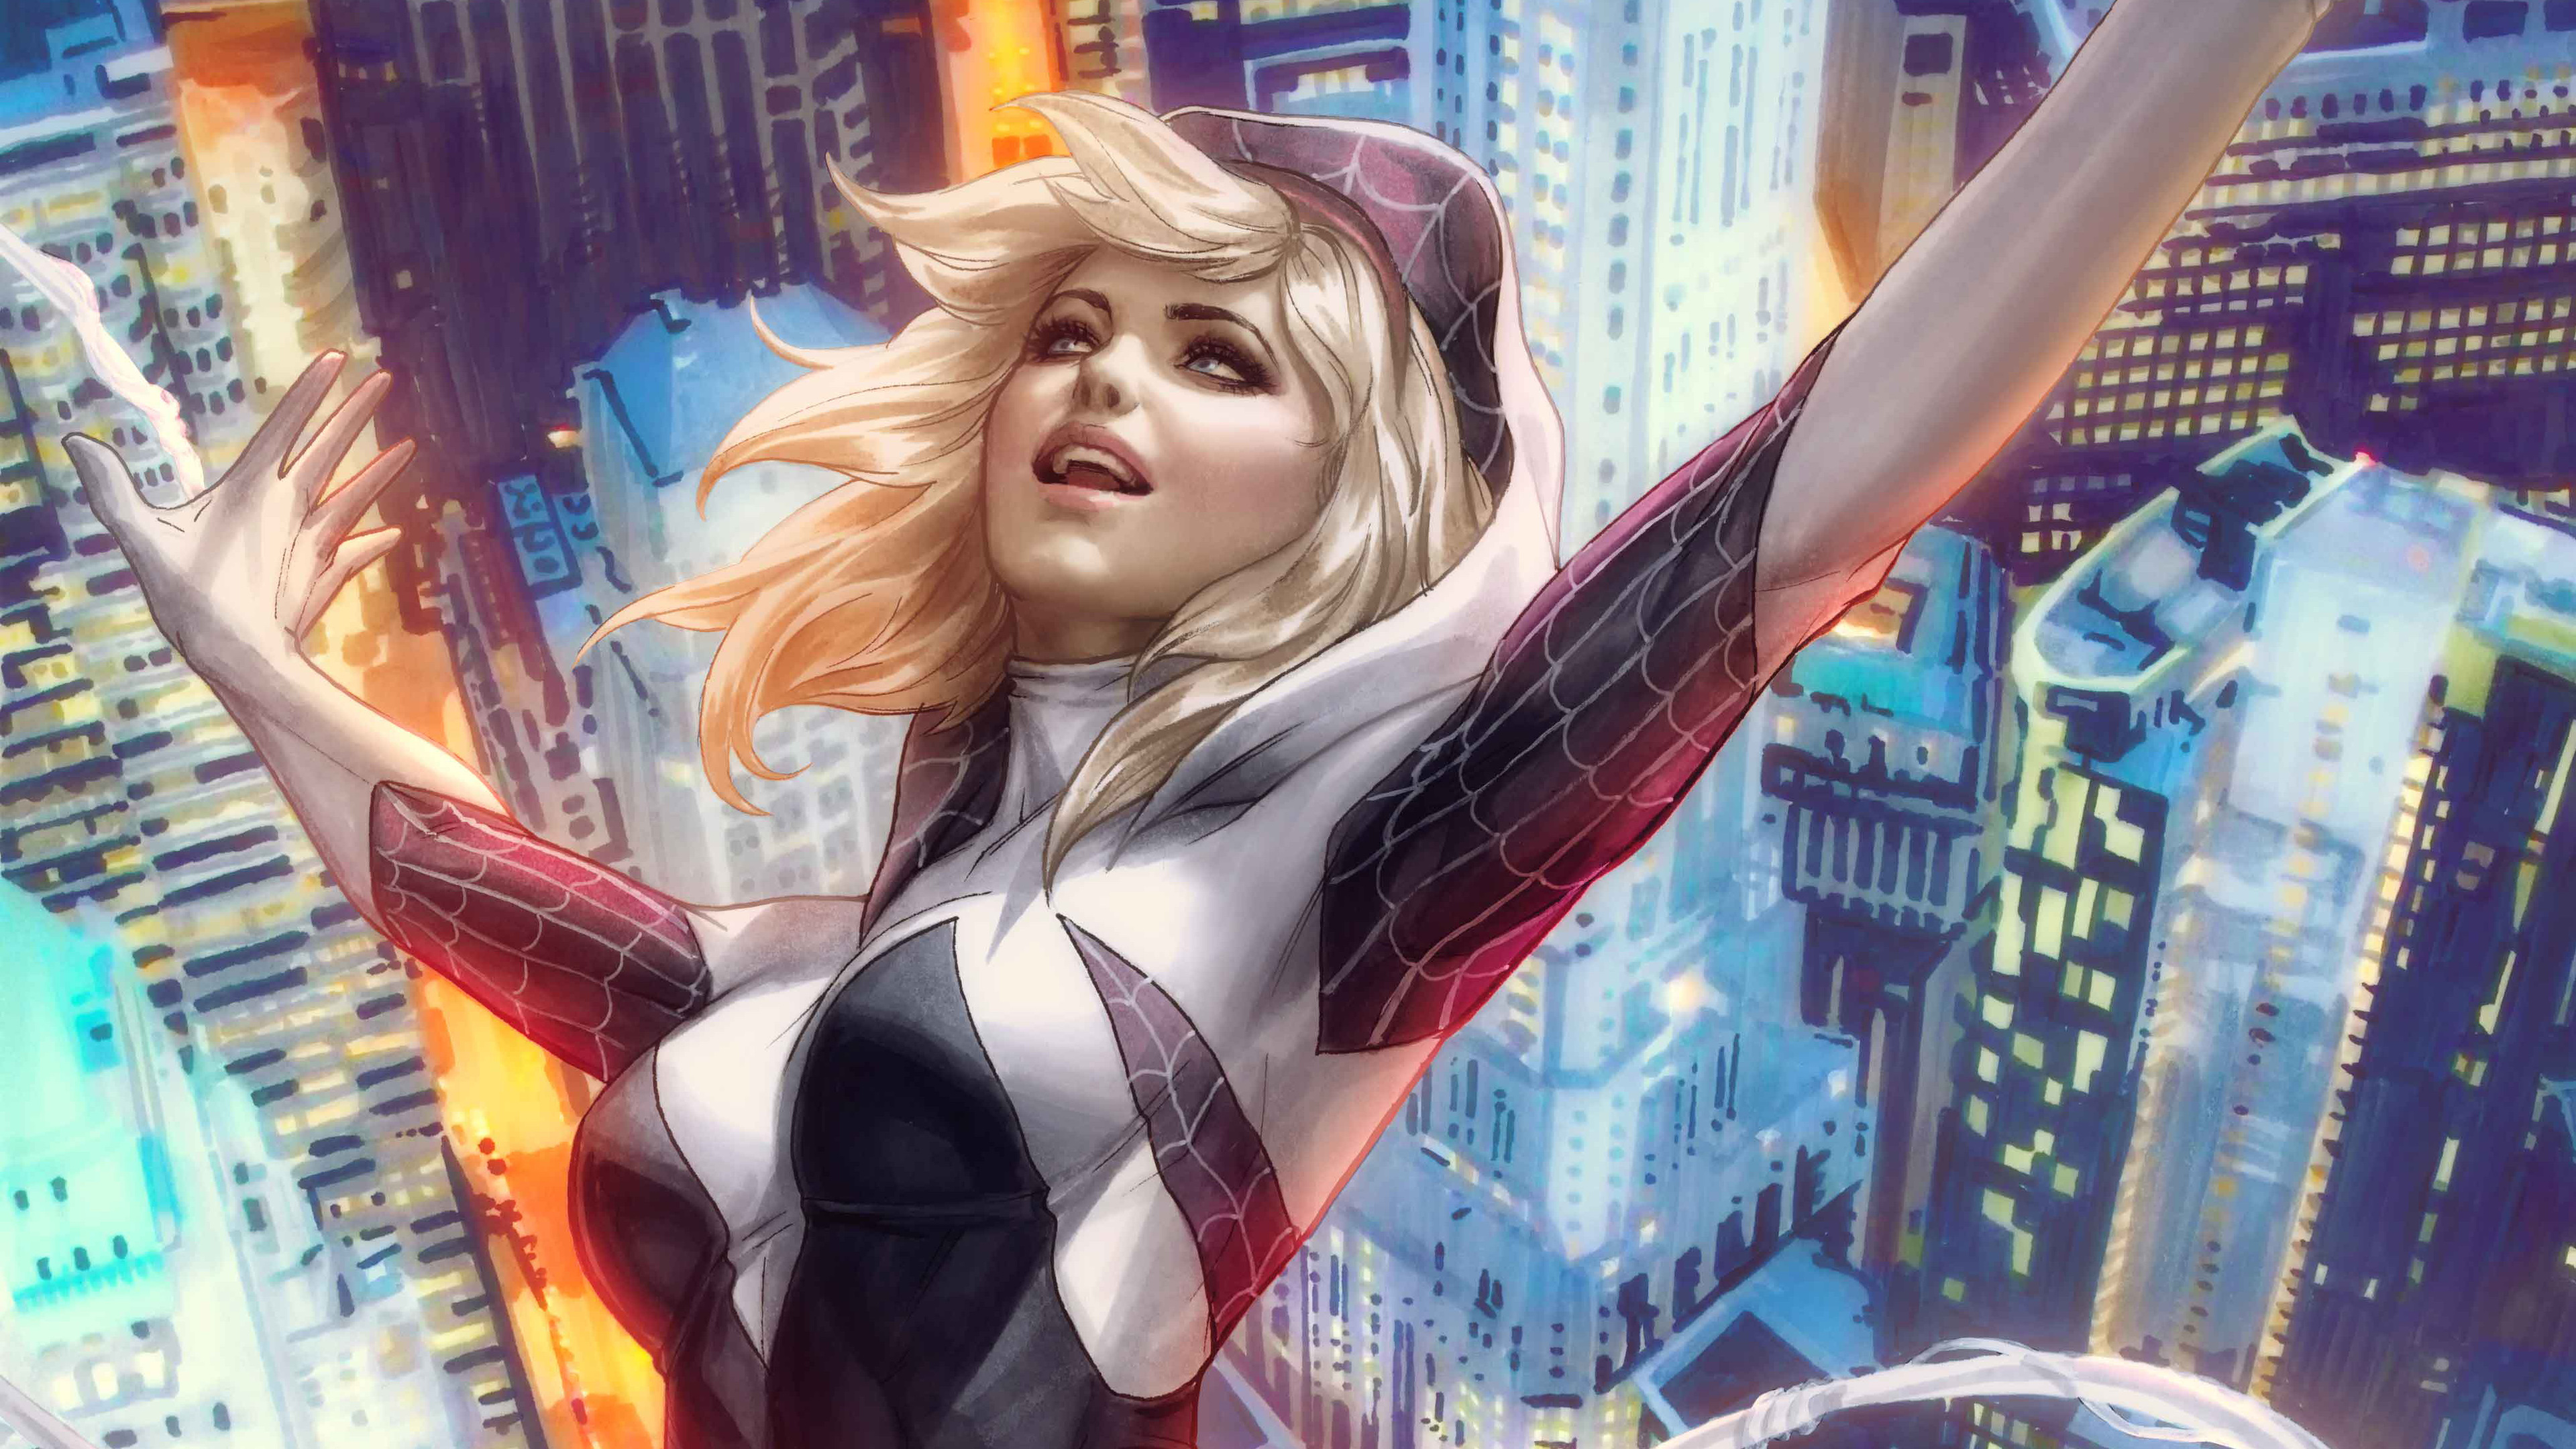 spider gwen art 4k 1537645942 - Spider Gwen Art 4k - superheroes wallpapers, hd-wallpapers, gwen wallpapers, gwen stacy wallpapers, digital art wallpapers, artwork wallpapers, artist wallpapers, 4k-wallpapers